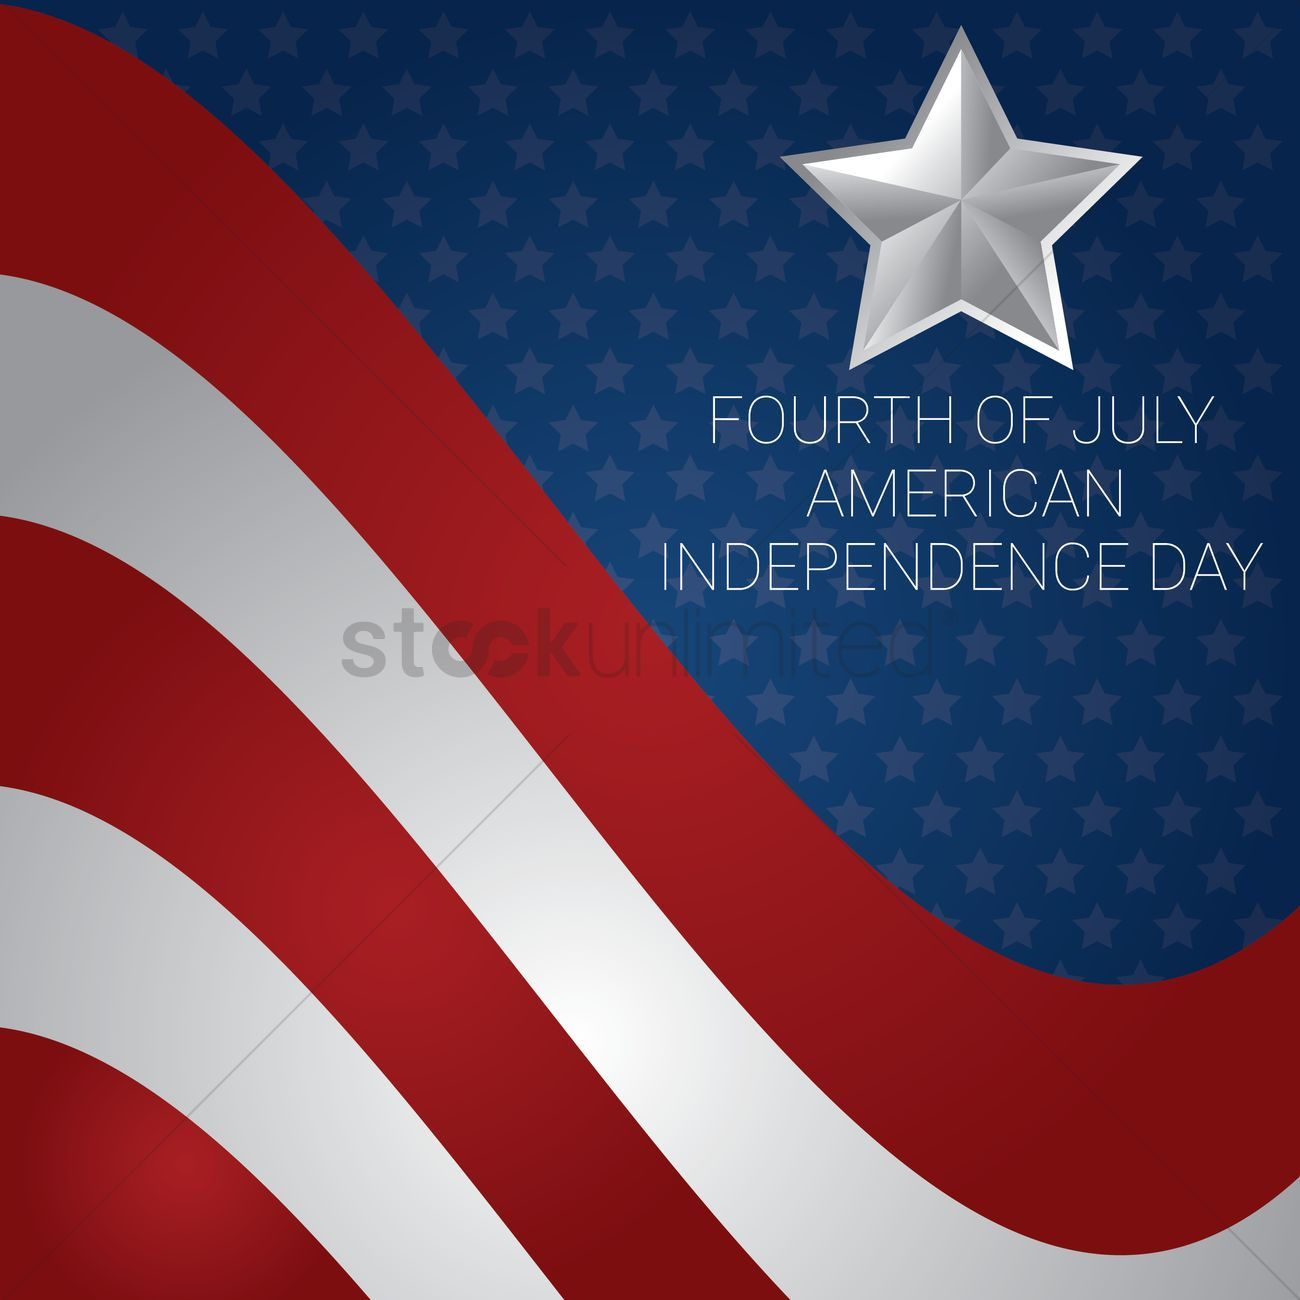 Usa independence day Vector Image - 1557288 | StockUnlimited